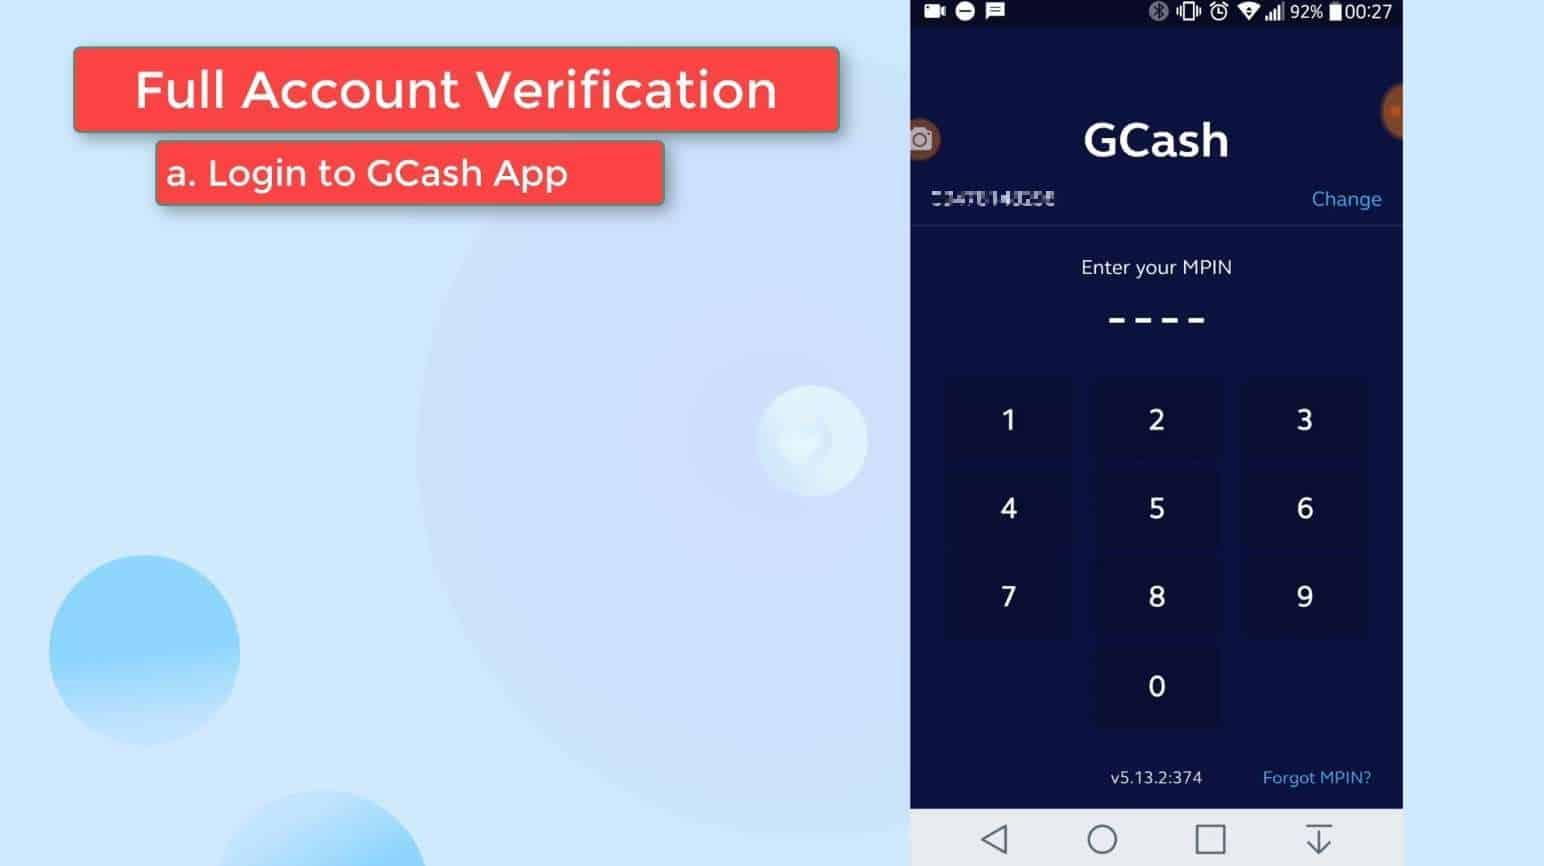 Gcash Login